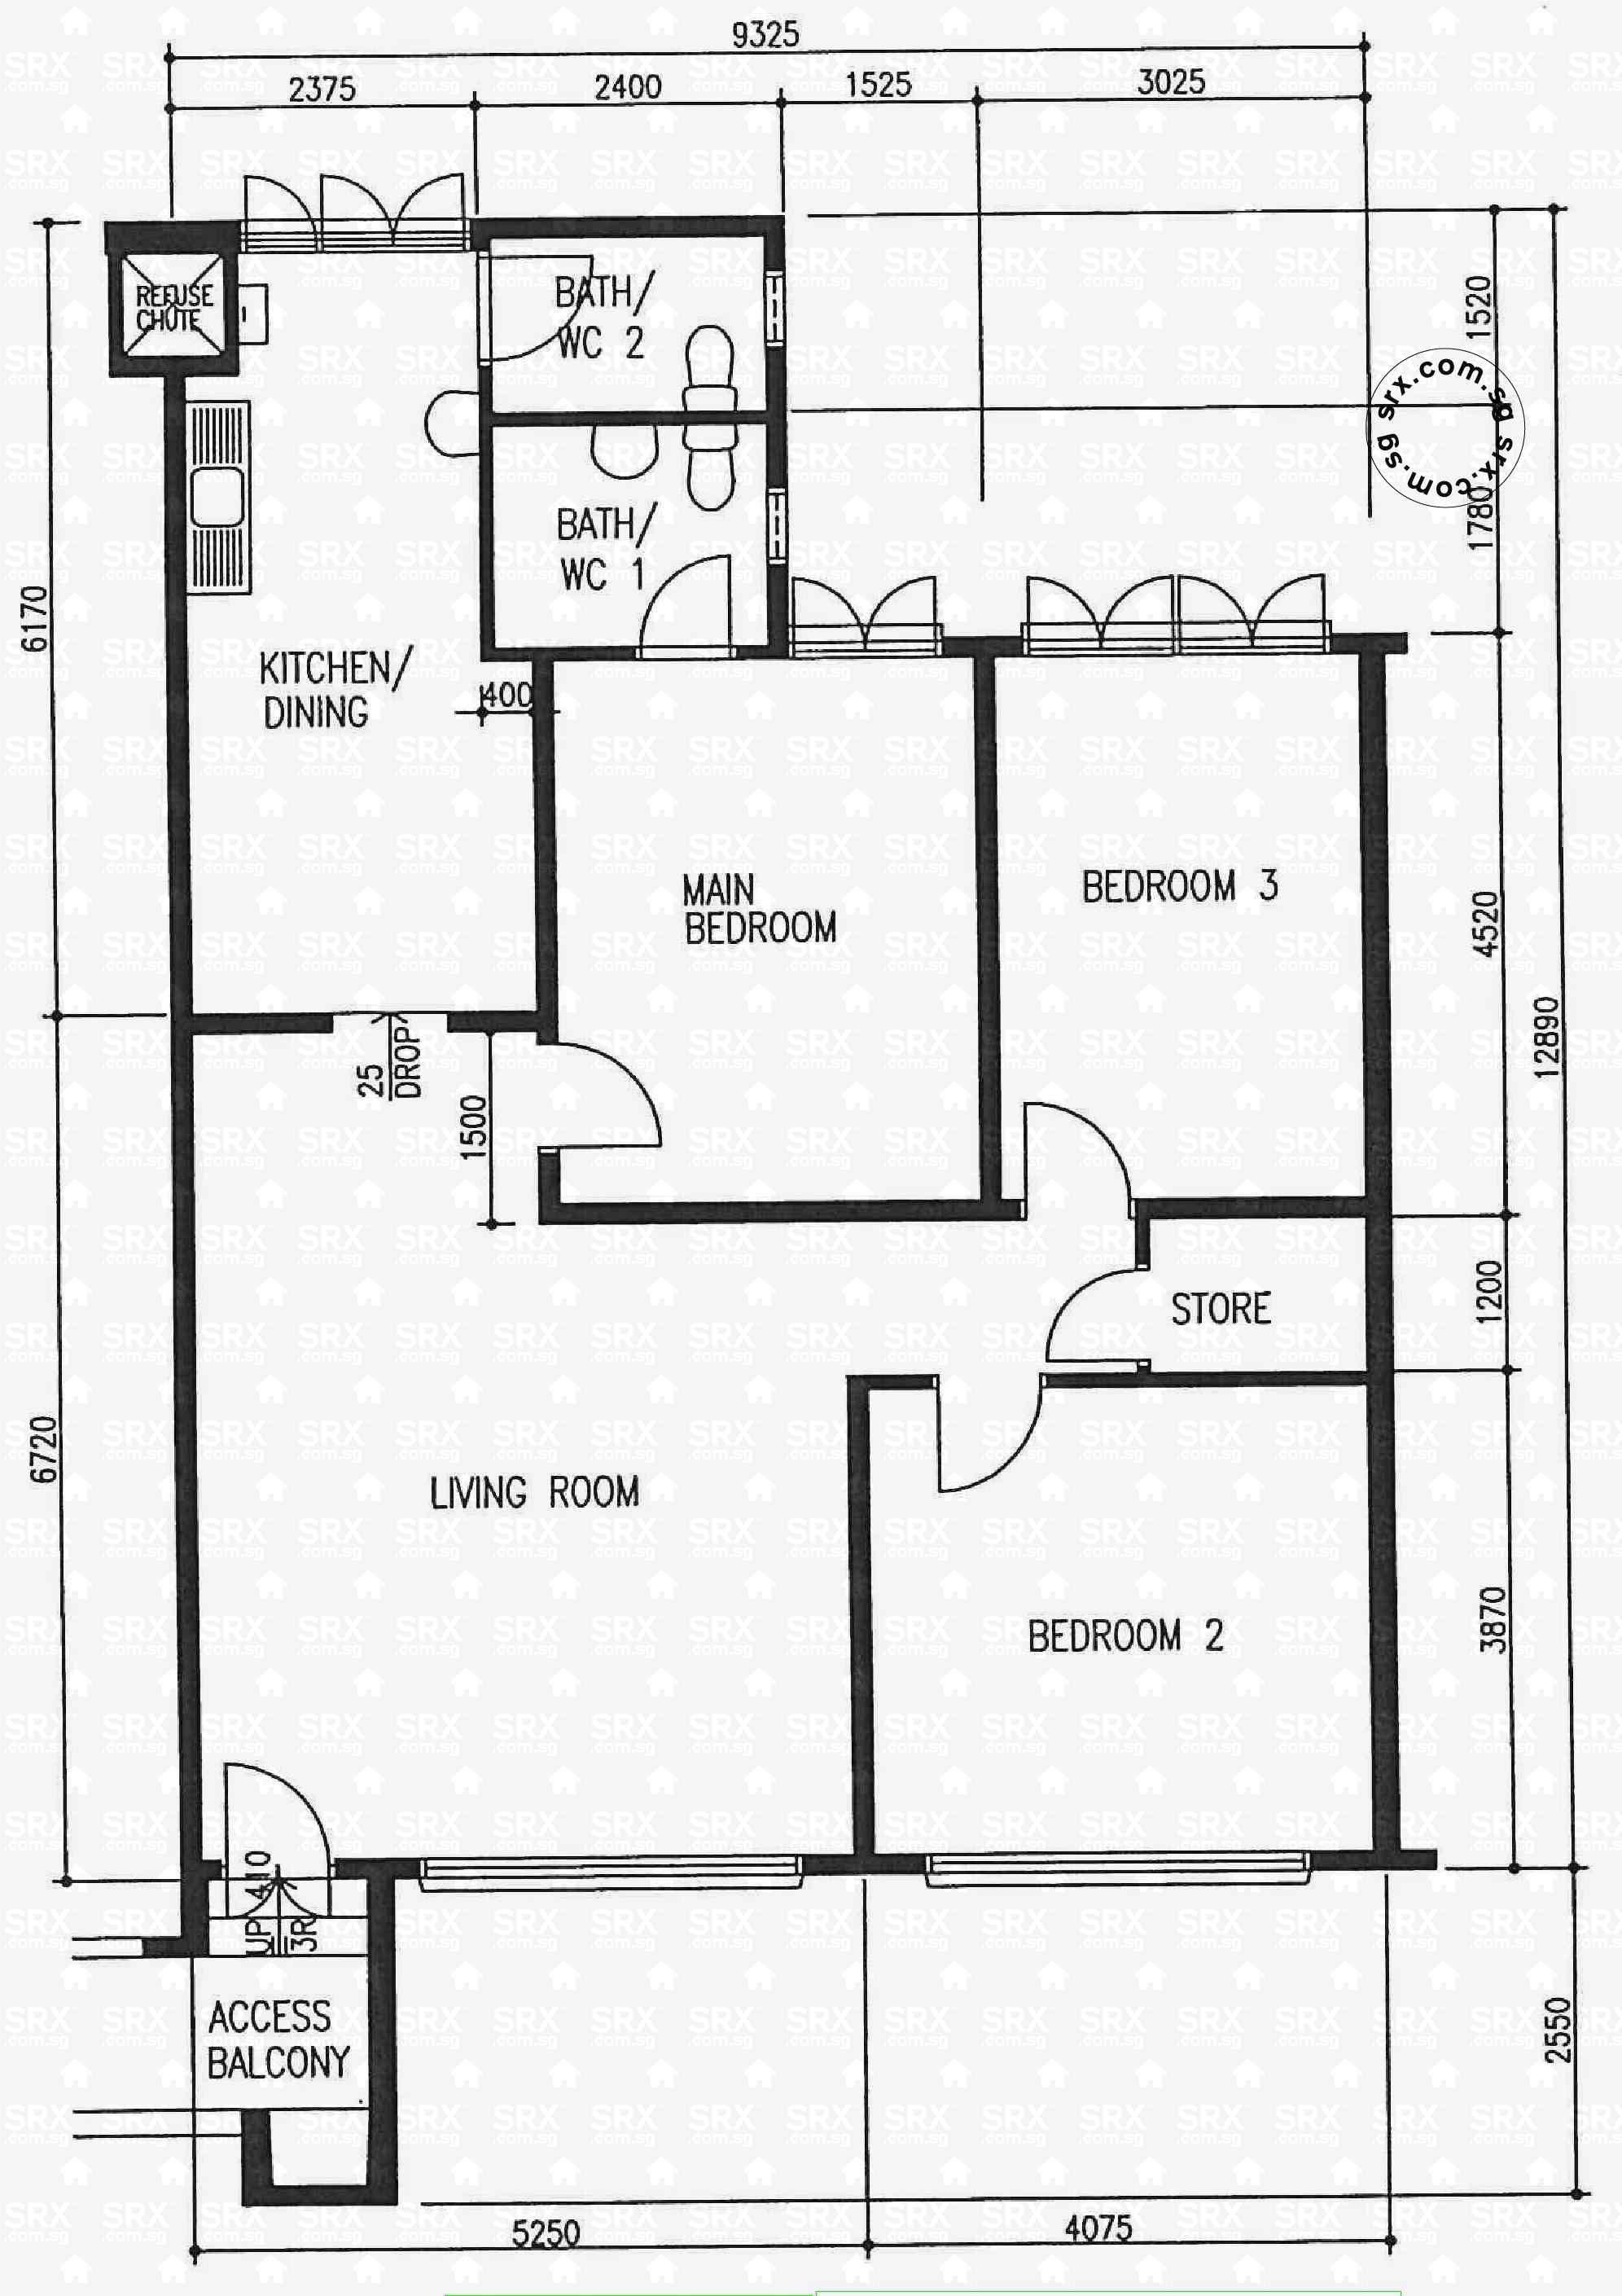 Floor plans for pending road hdb details srx property for 126 simcoe floor plan